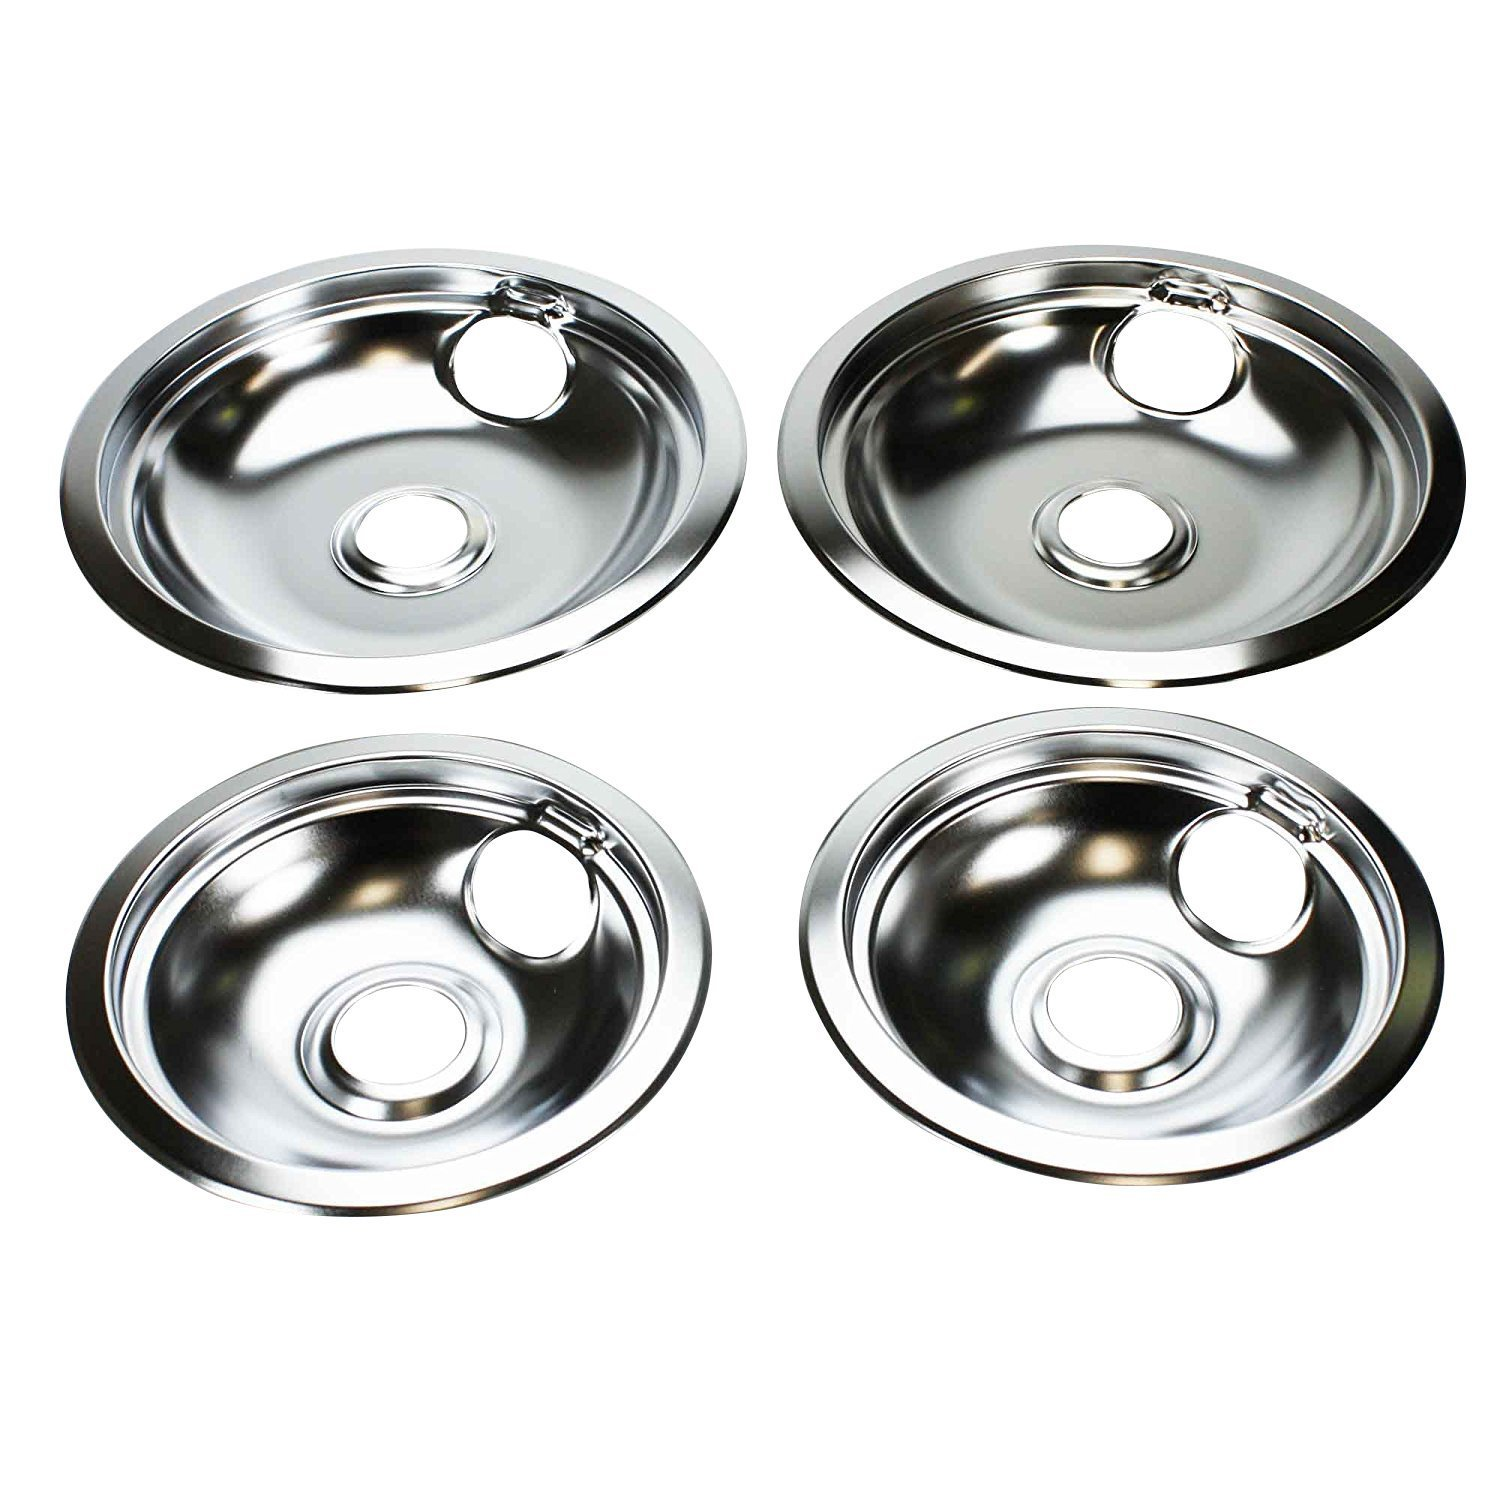 "316048413 & 316048414 Drip Pan Set (2x 6"" + 2x 8"") Compatible with Frigidaire Range Oven"